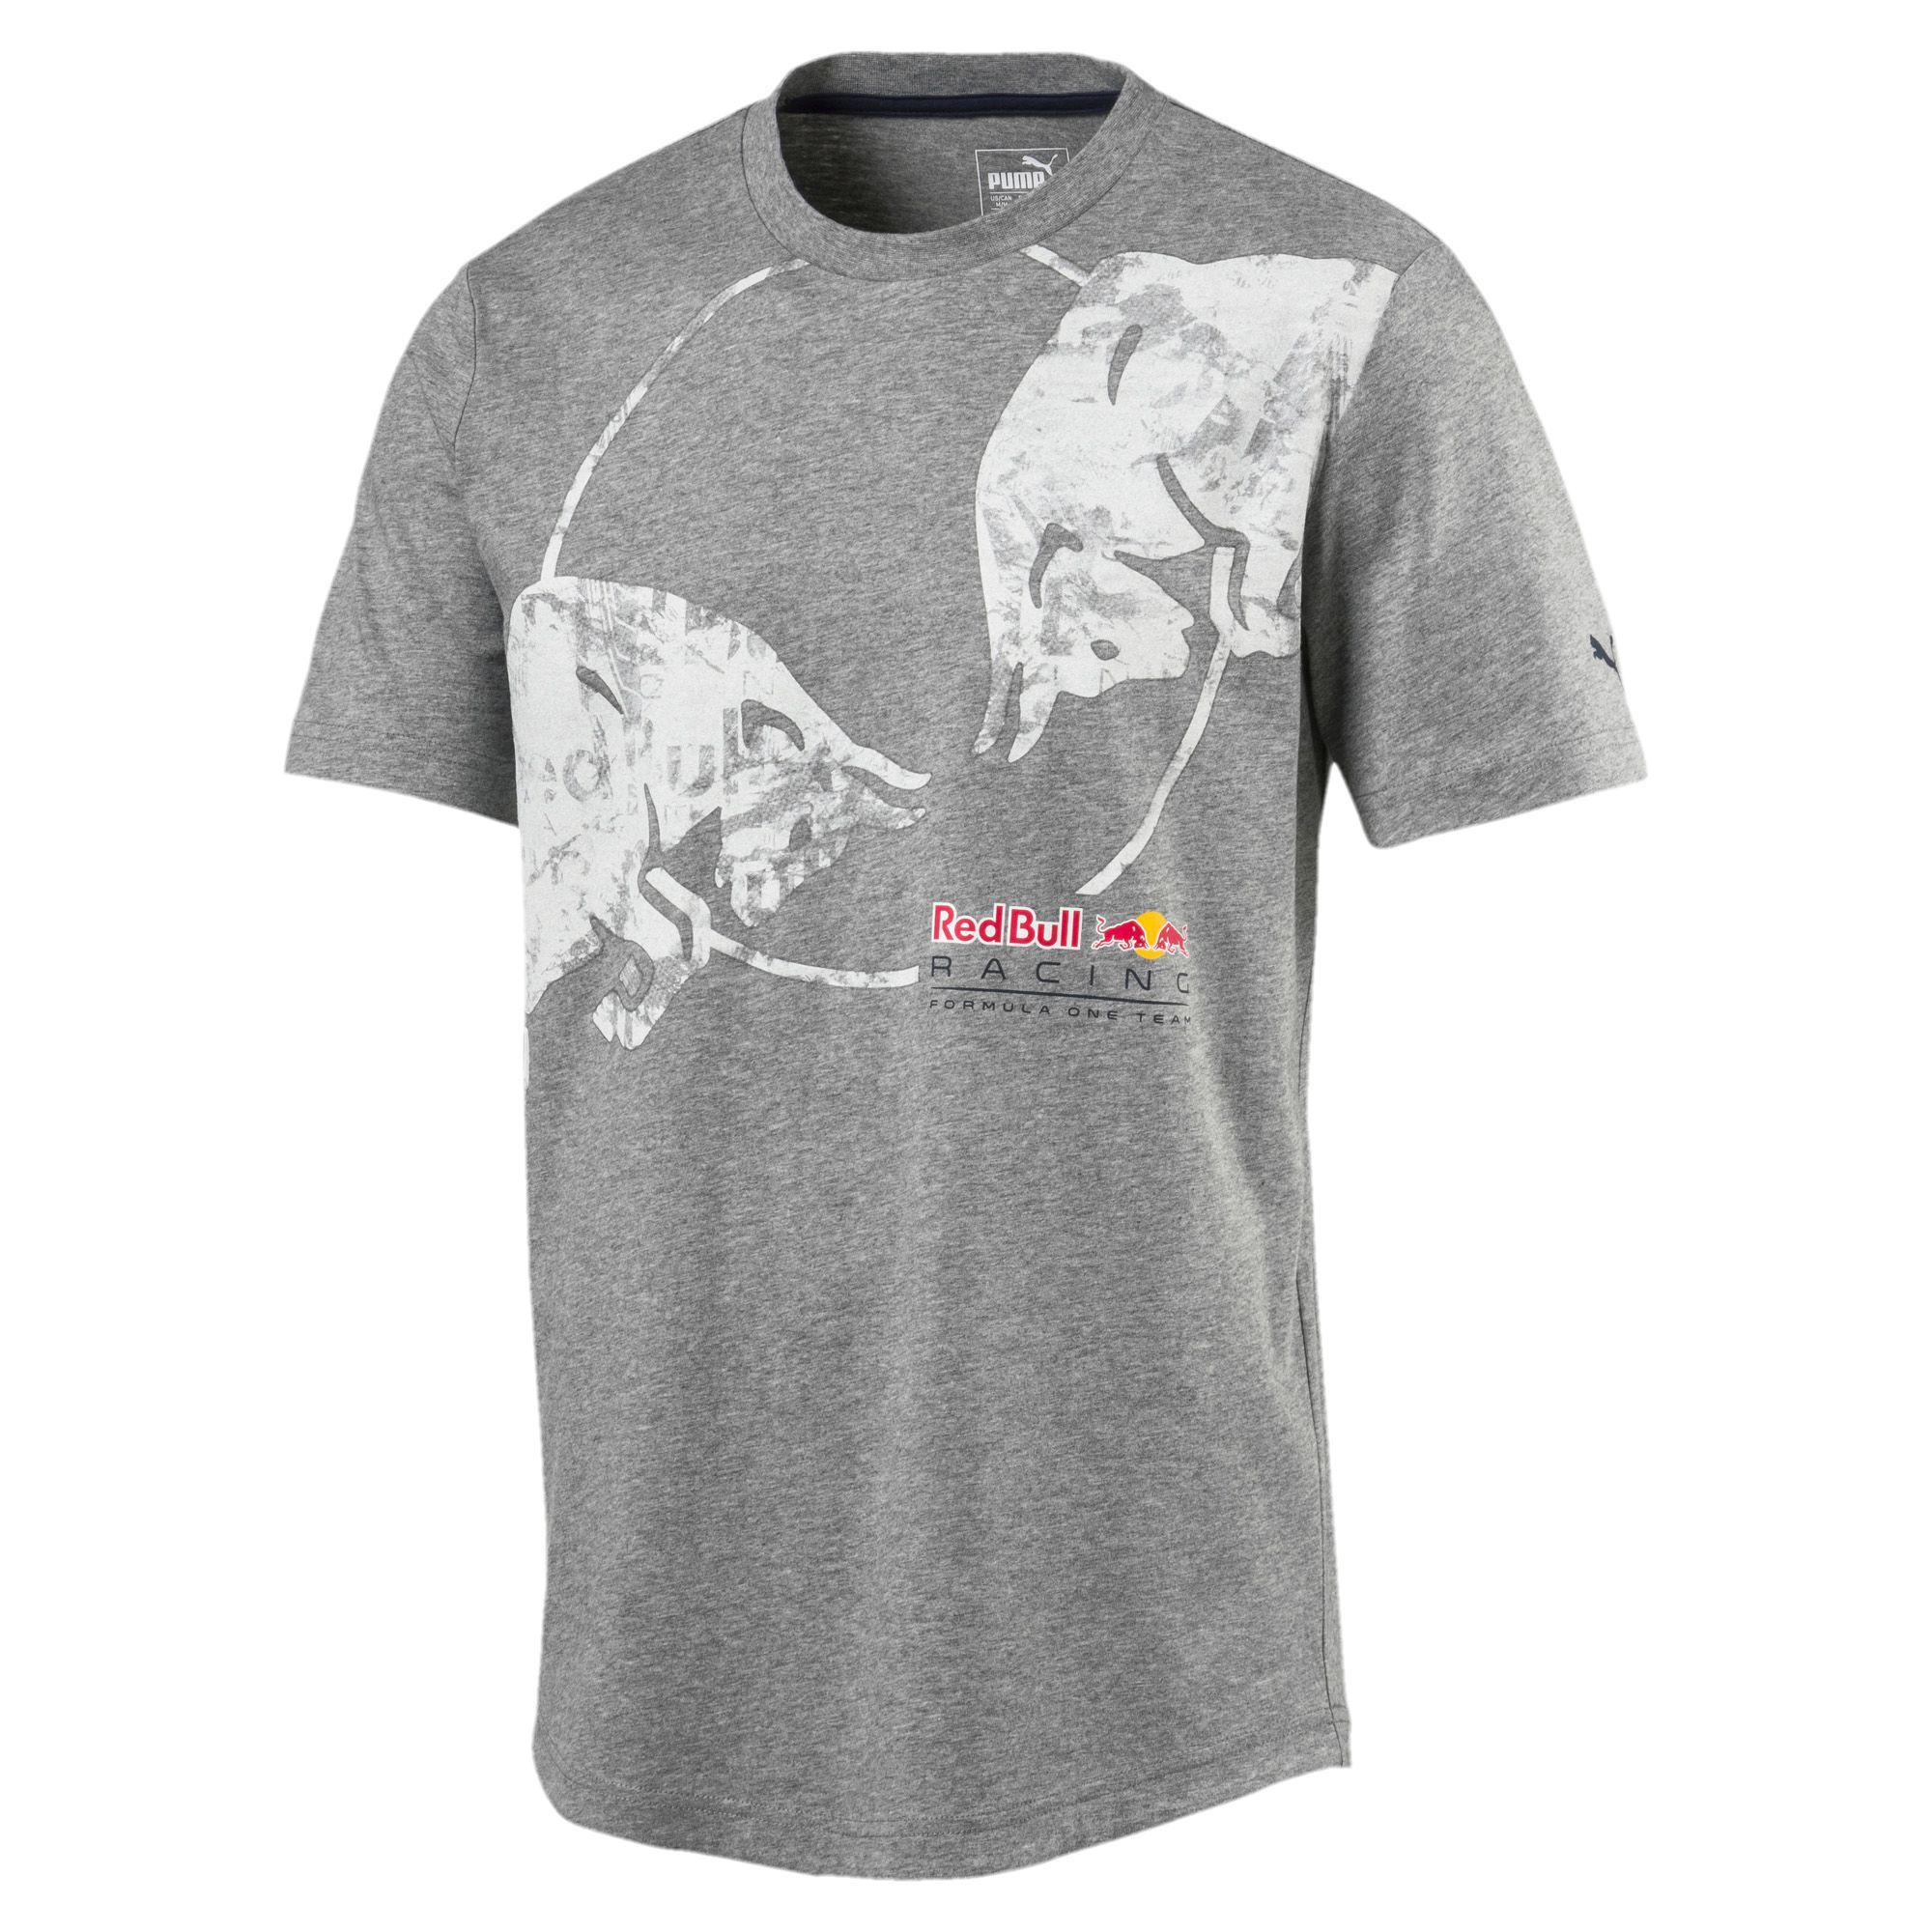 5da4933b Lyst - PUMA Red Bull Racing Lifestyle Graphic T-shirt in Gray for Men